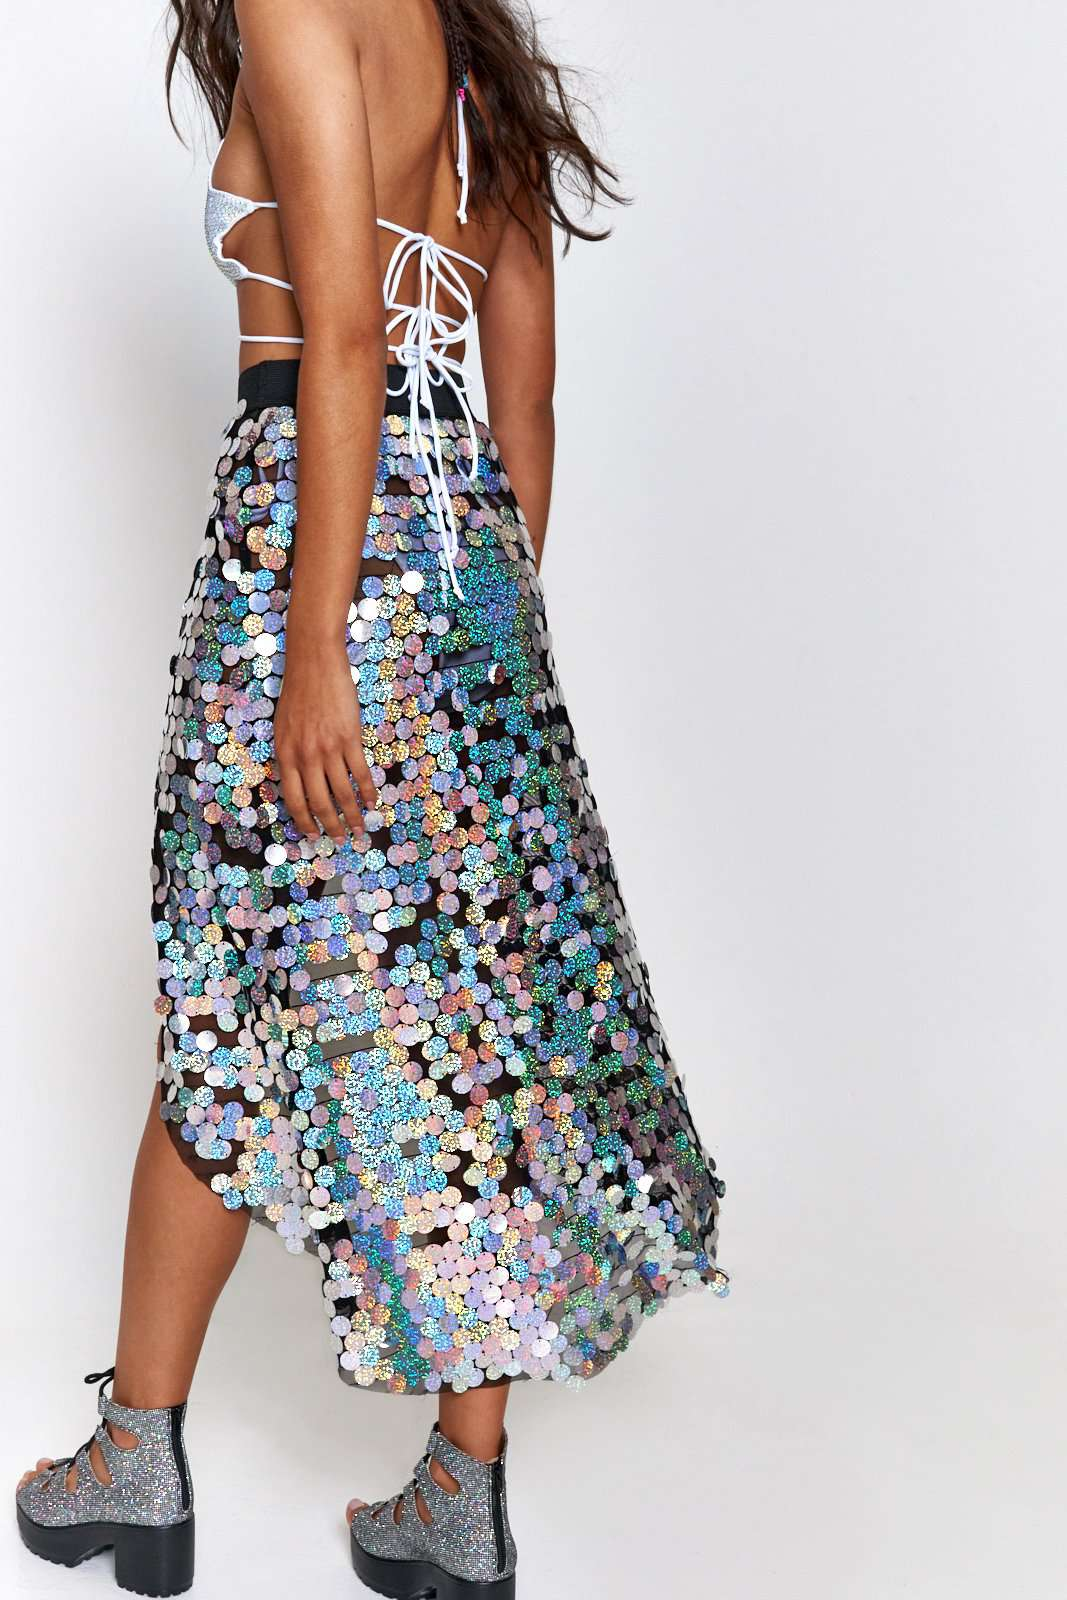 Silver Sequin Beach Skirt